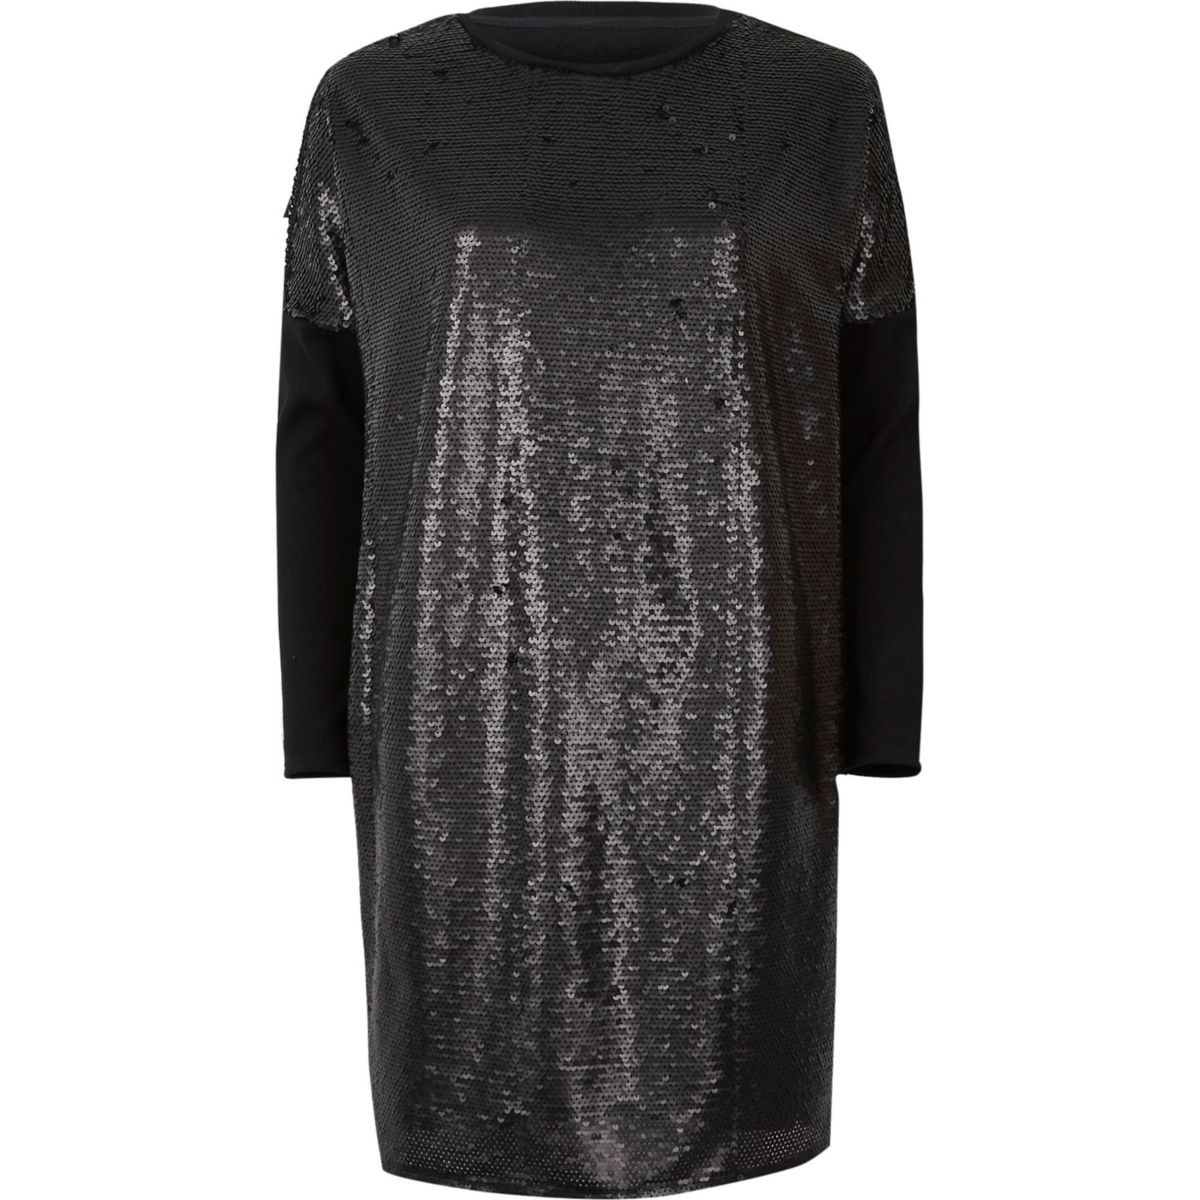 Black sequin oversized long sleeve t shirt tops sale for Long sleeve black tee shirts